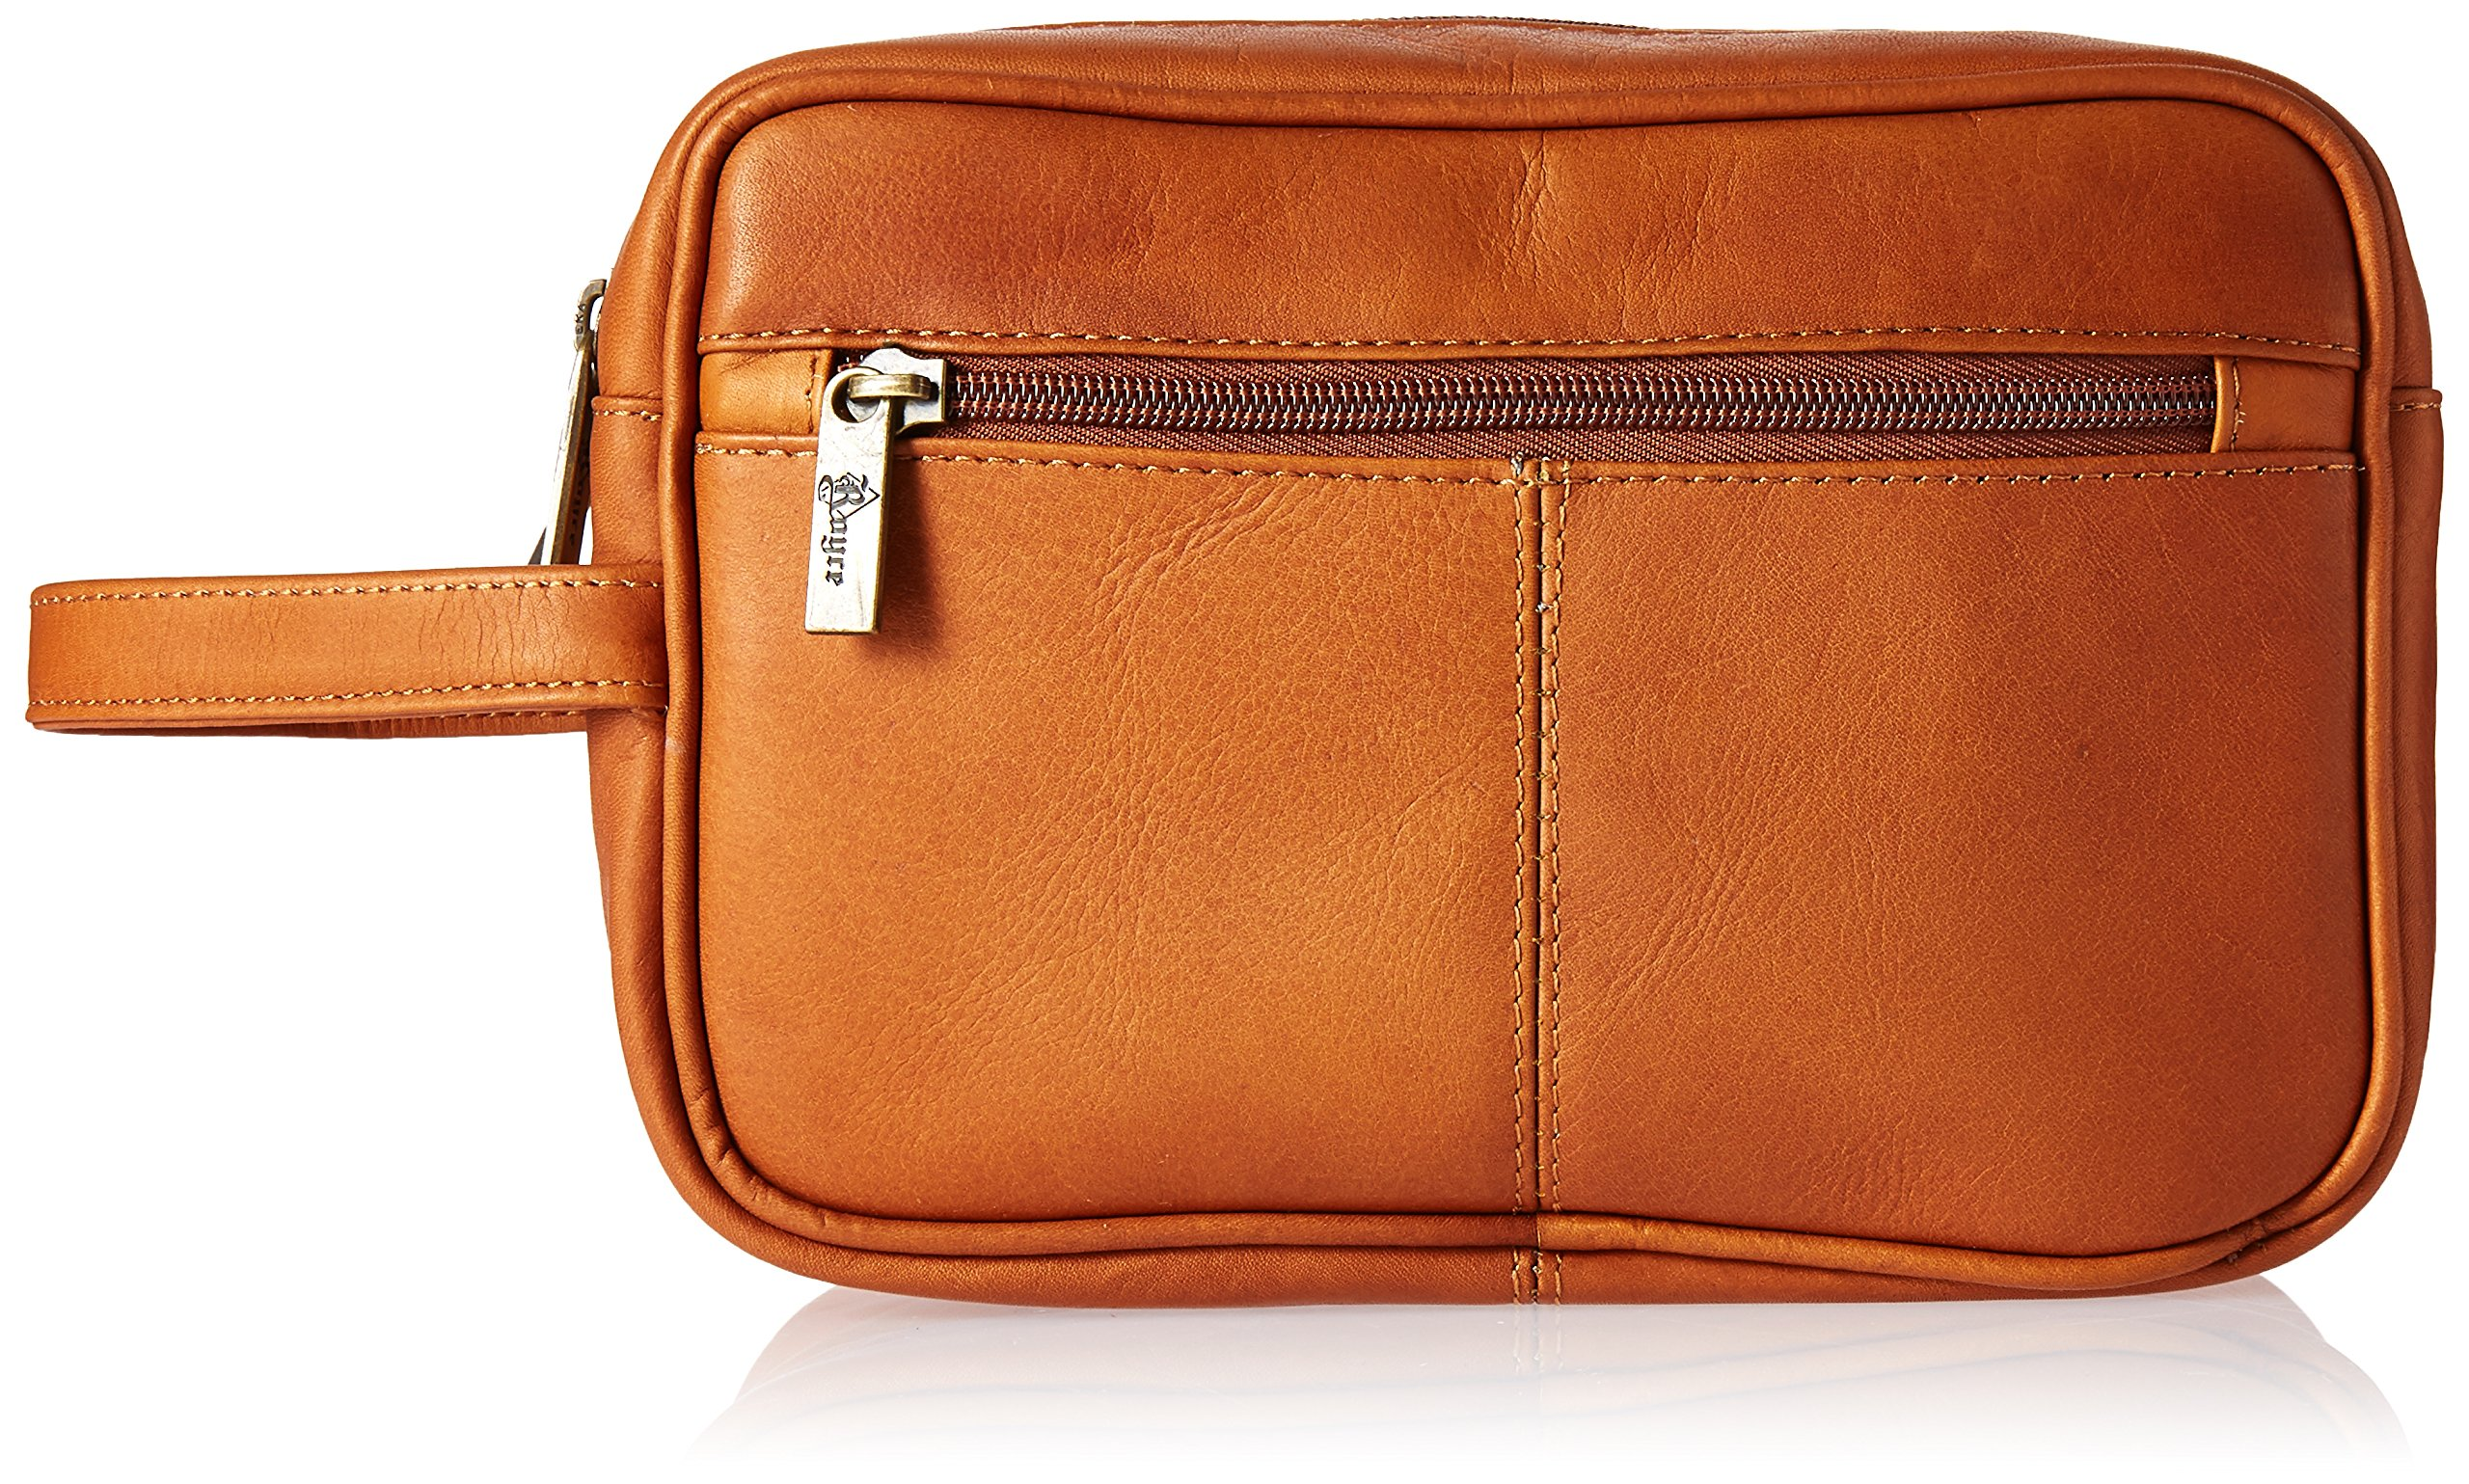 Royce Leather Men's Colombian Leather Travel Toiletry Bag, Tan